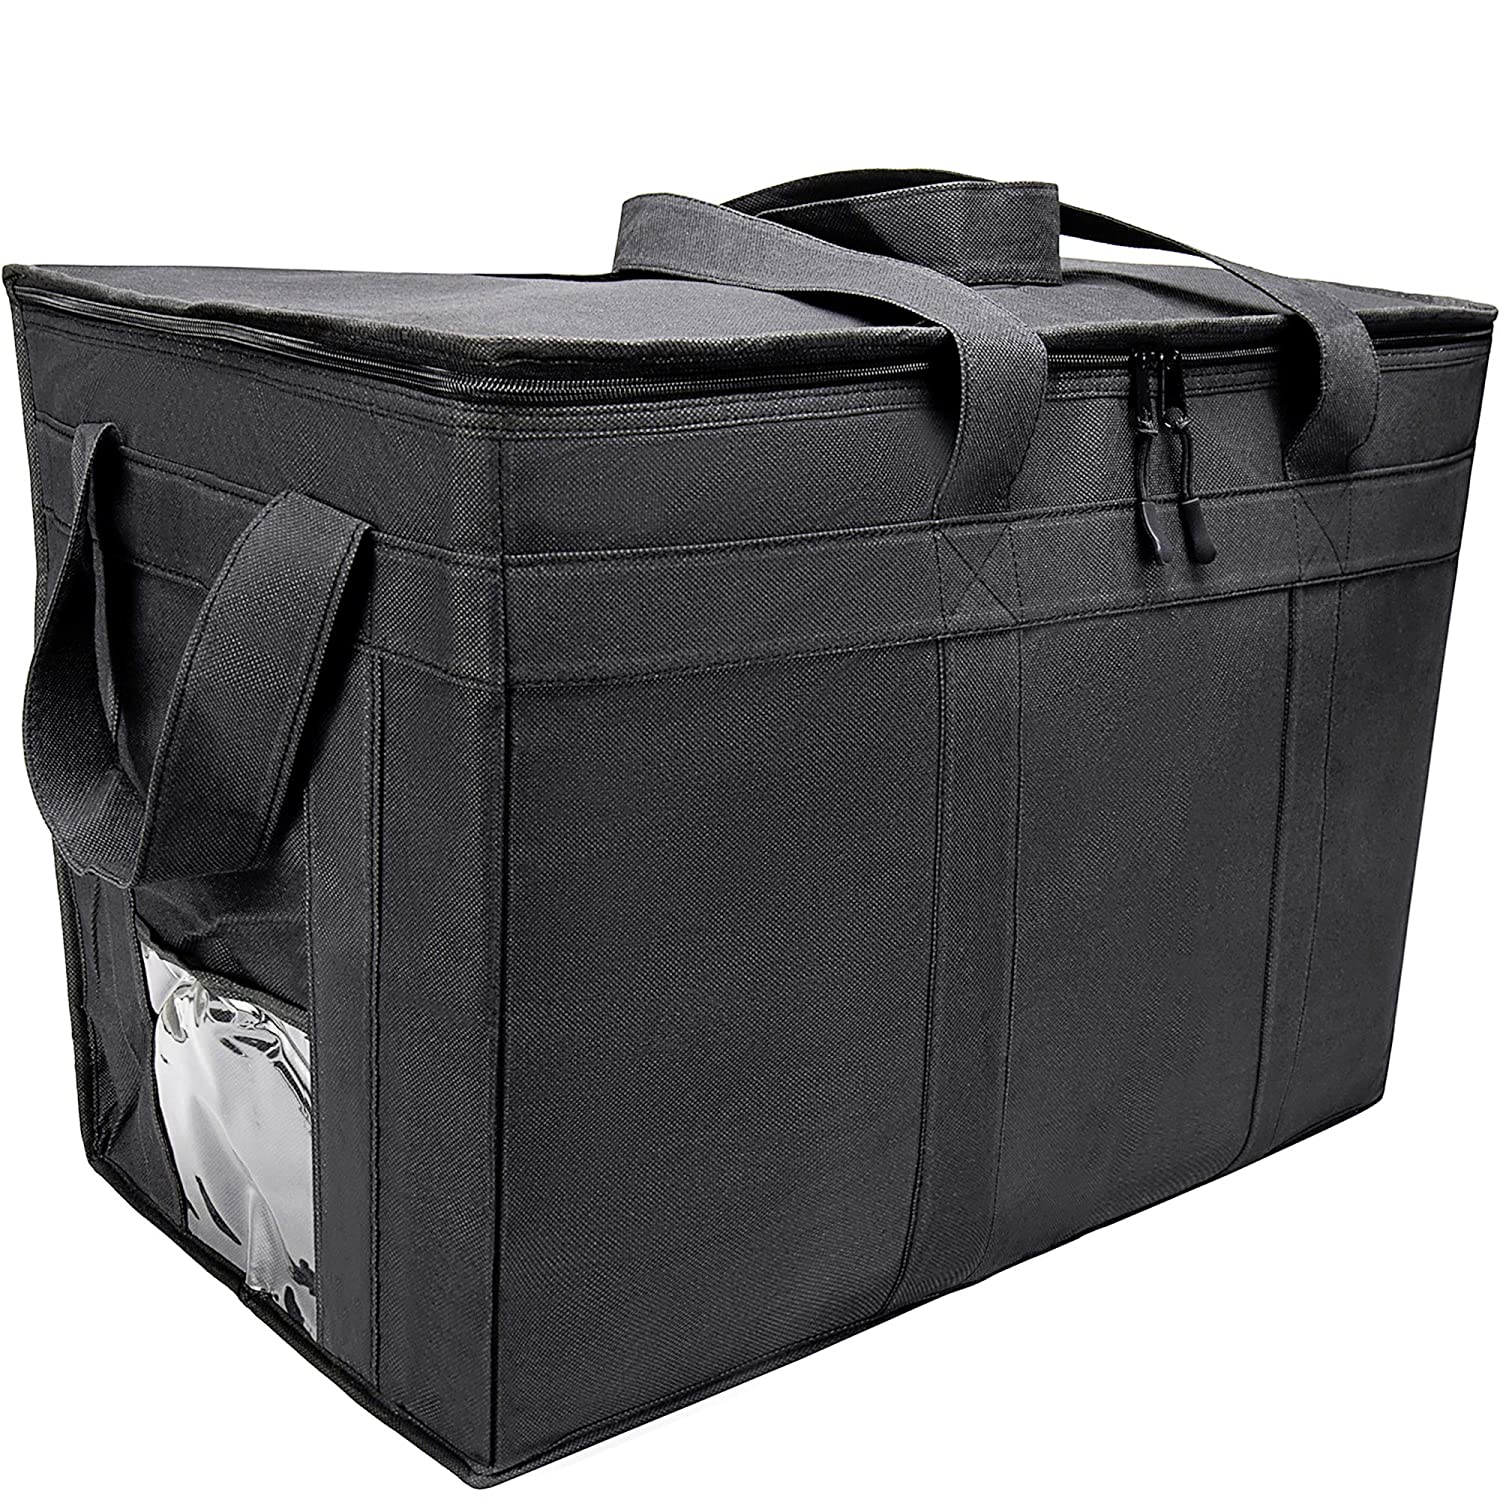 Insulated Delivery Grocery Bag Carrier, 23